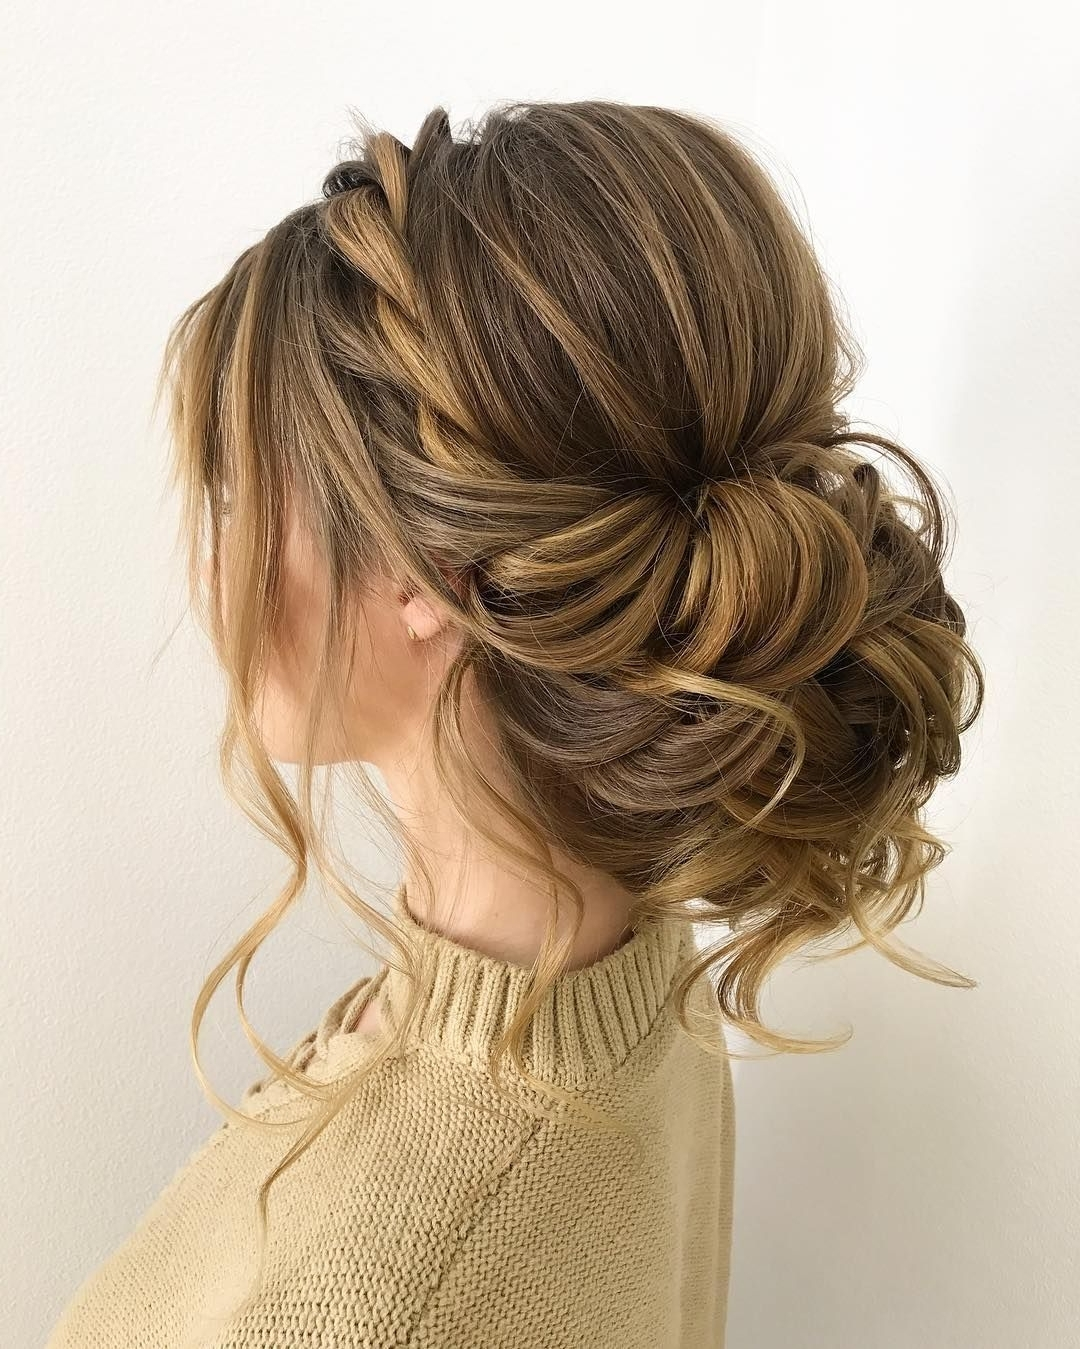 Gorgeous Wedding Updo Hairstyles That Will Wow Your Big Day With Regard To Updo Hairstyles For Weddings (Gallery 10 of 15)